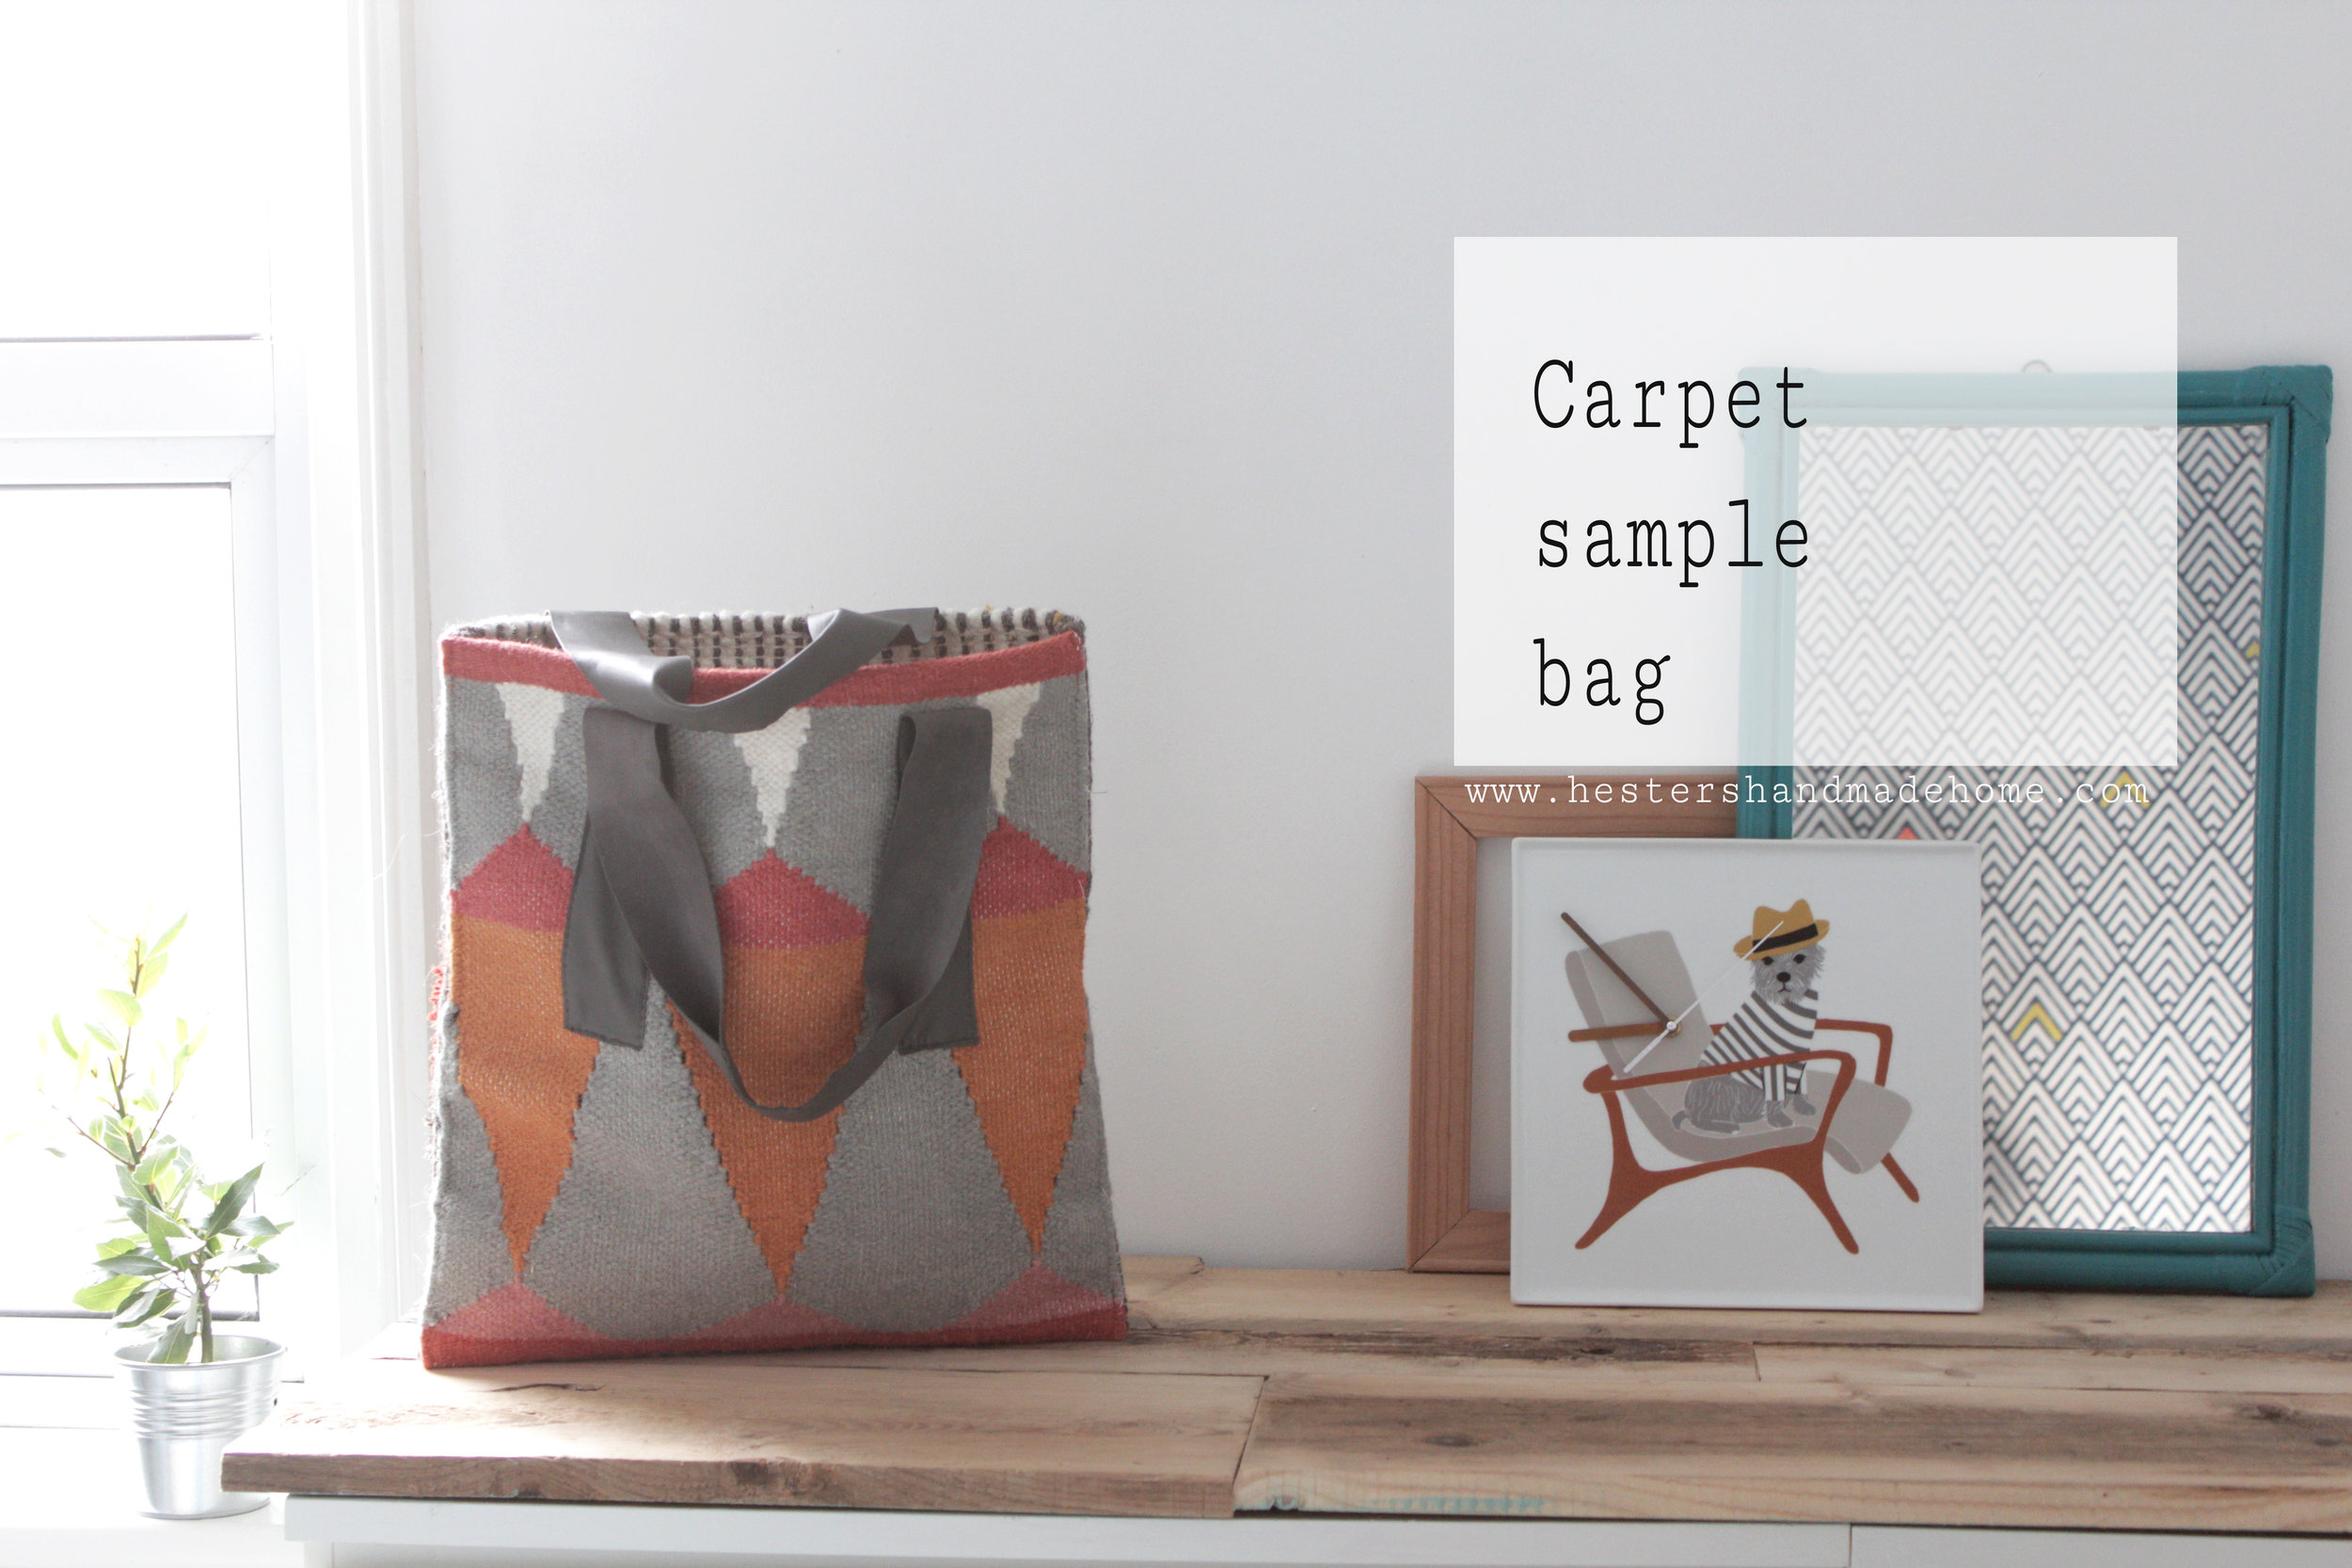 Carpet bag tutorial by Hesters Handmade Home